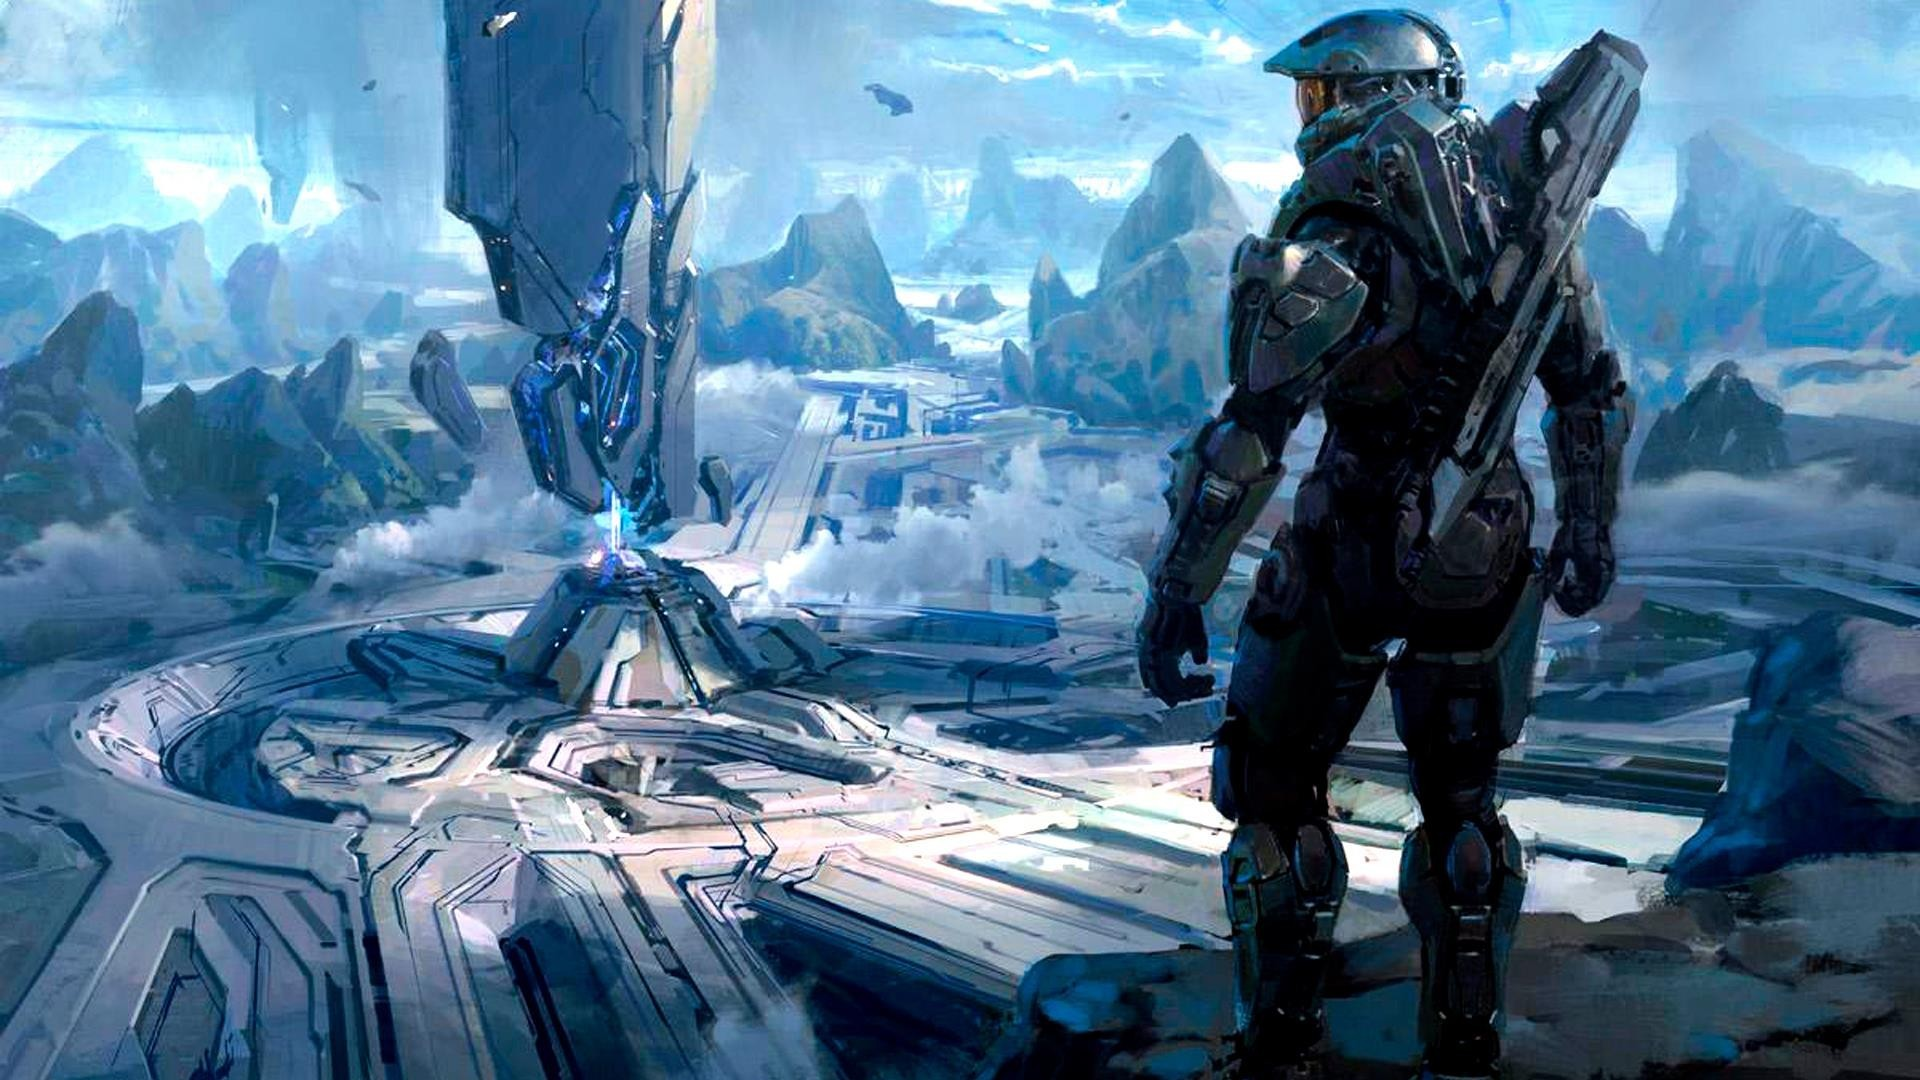 1920x1080 Halo, Master Chief, digital art, concept art, science fiction .